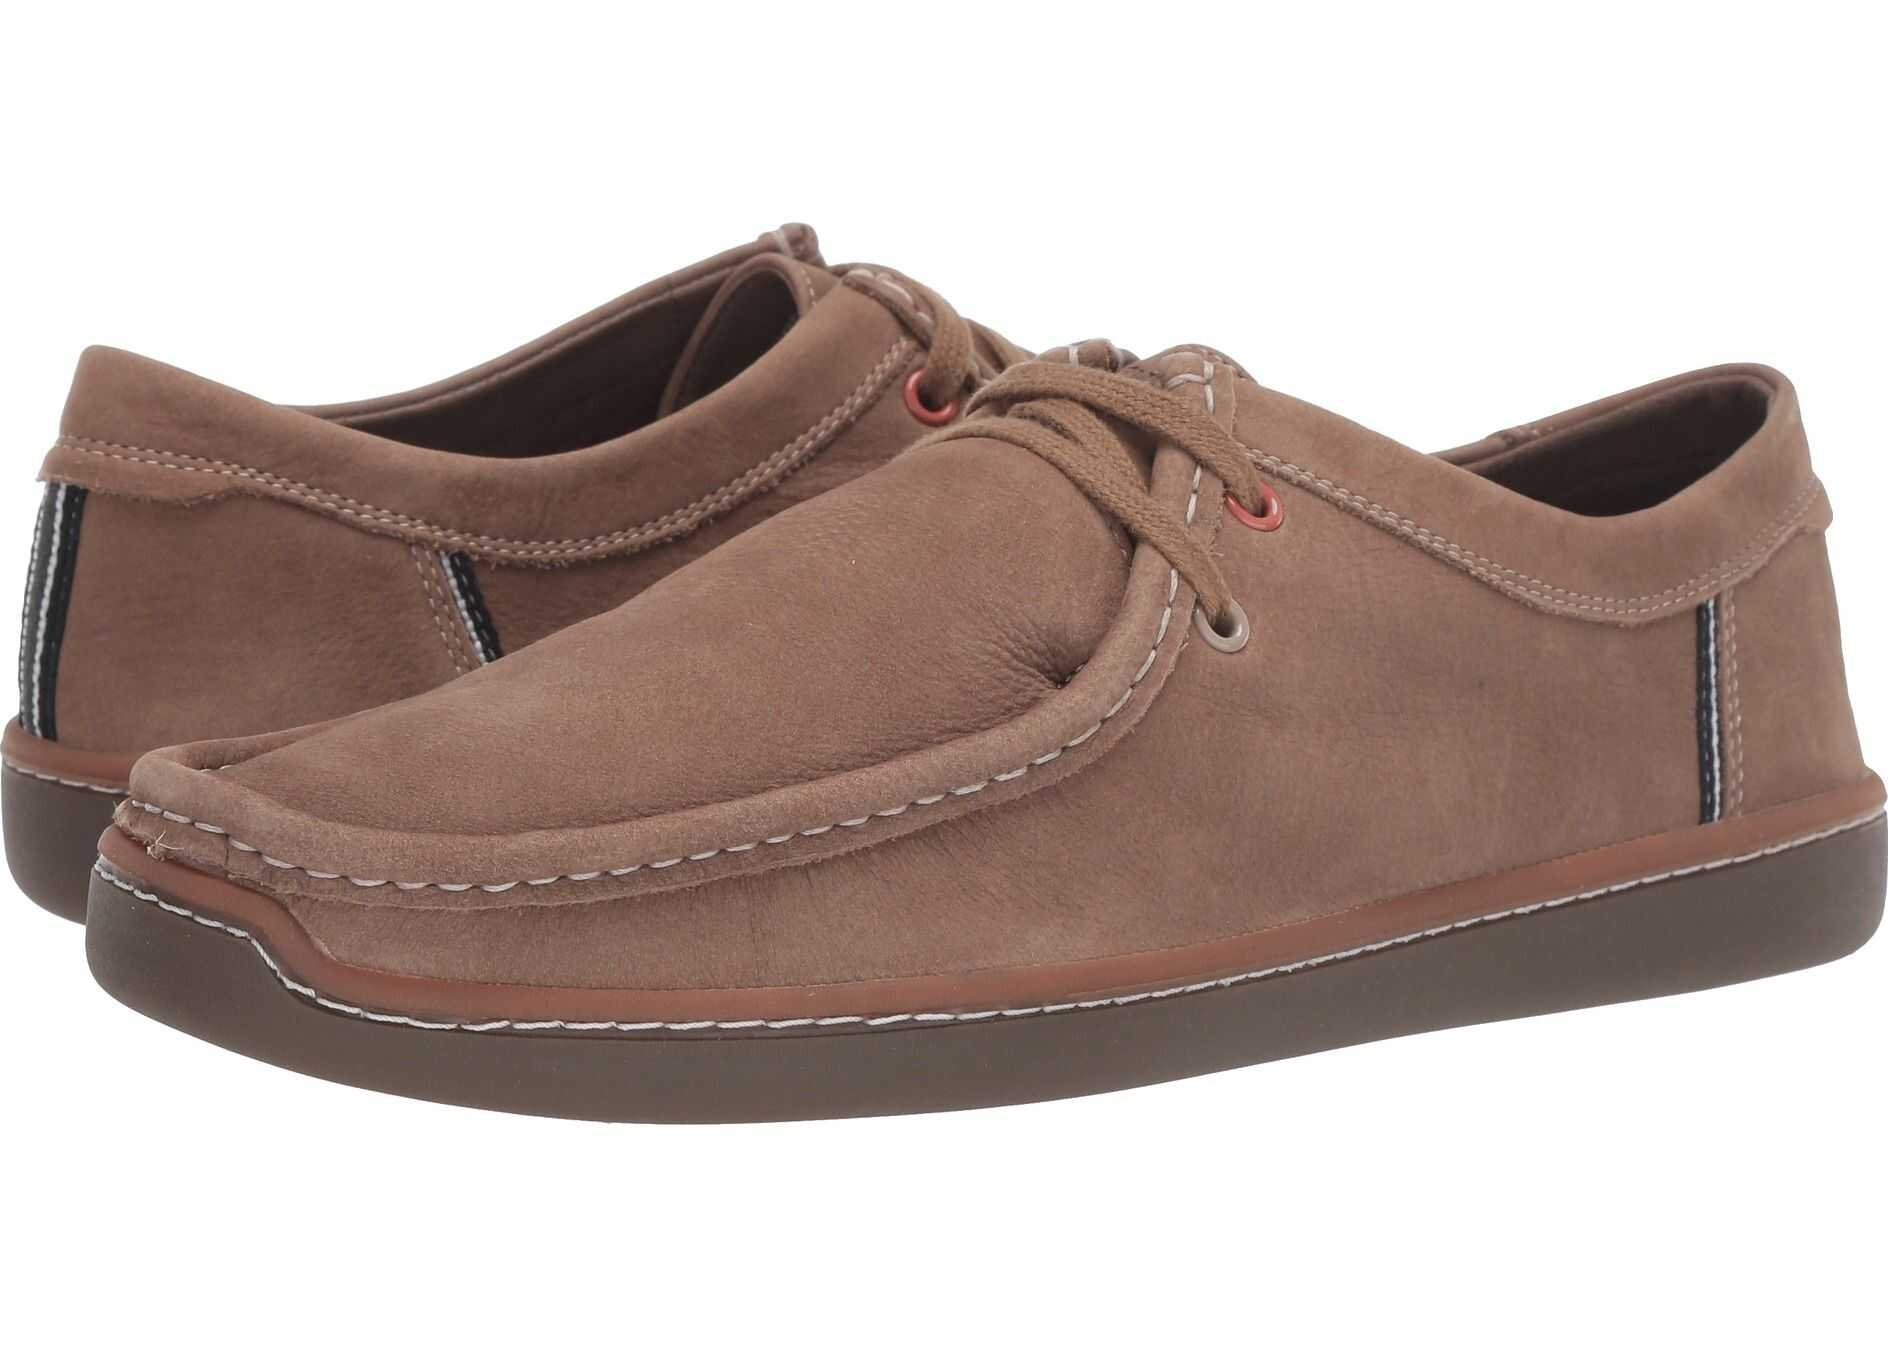 Hush Puppies Toby Oxford Taupe Nubuck